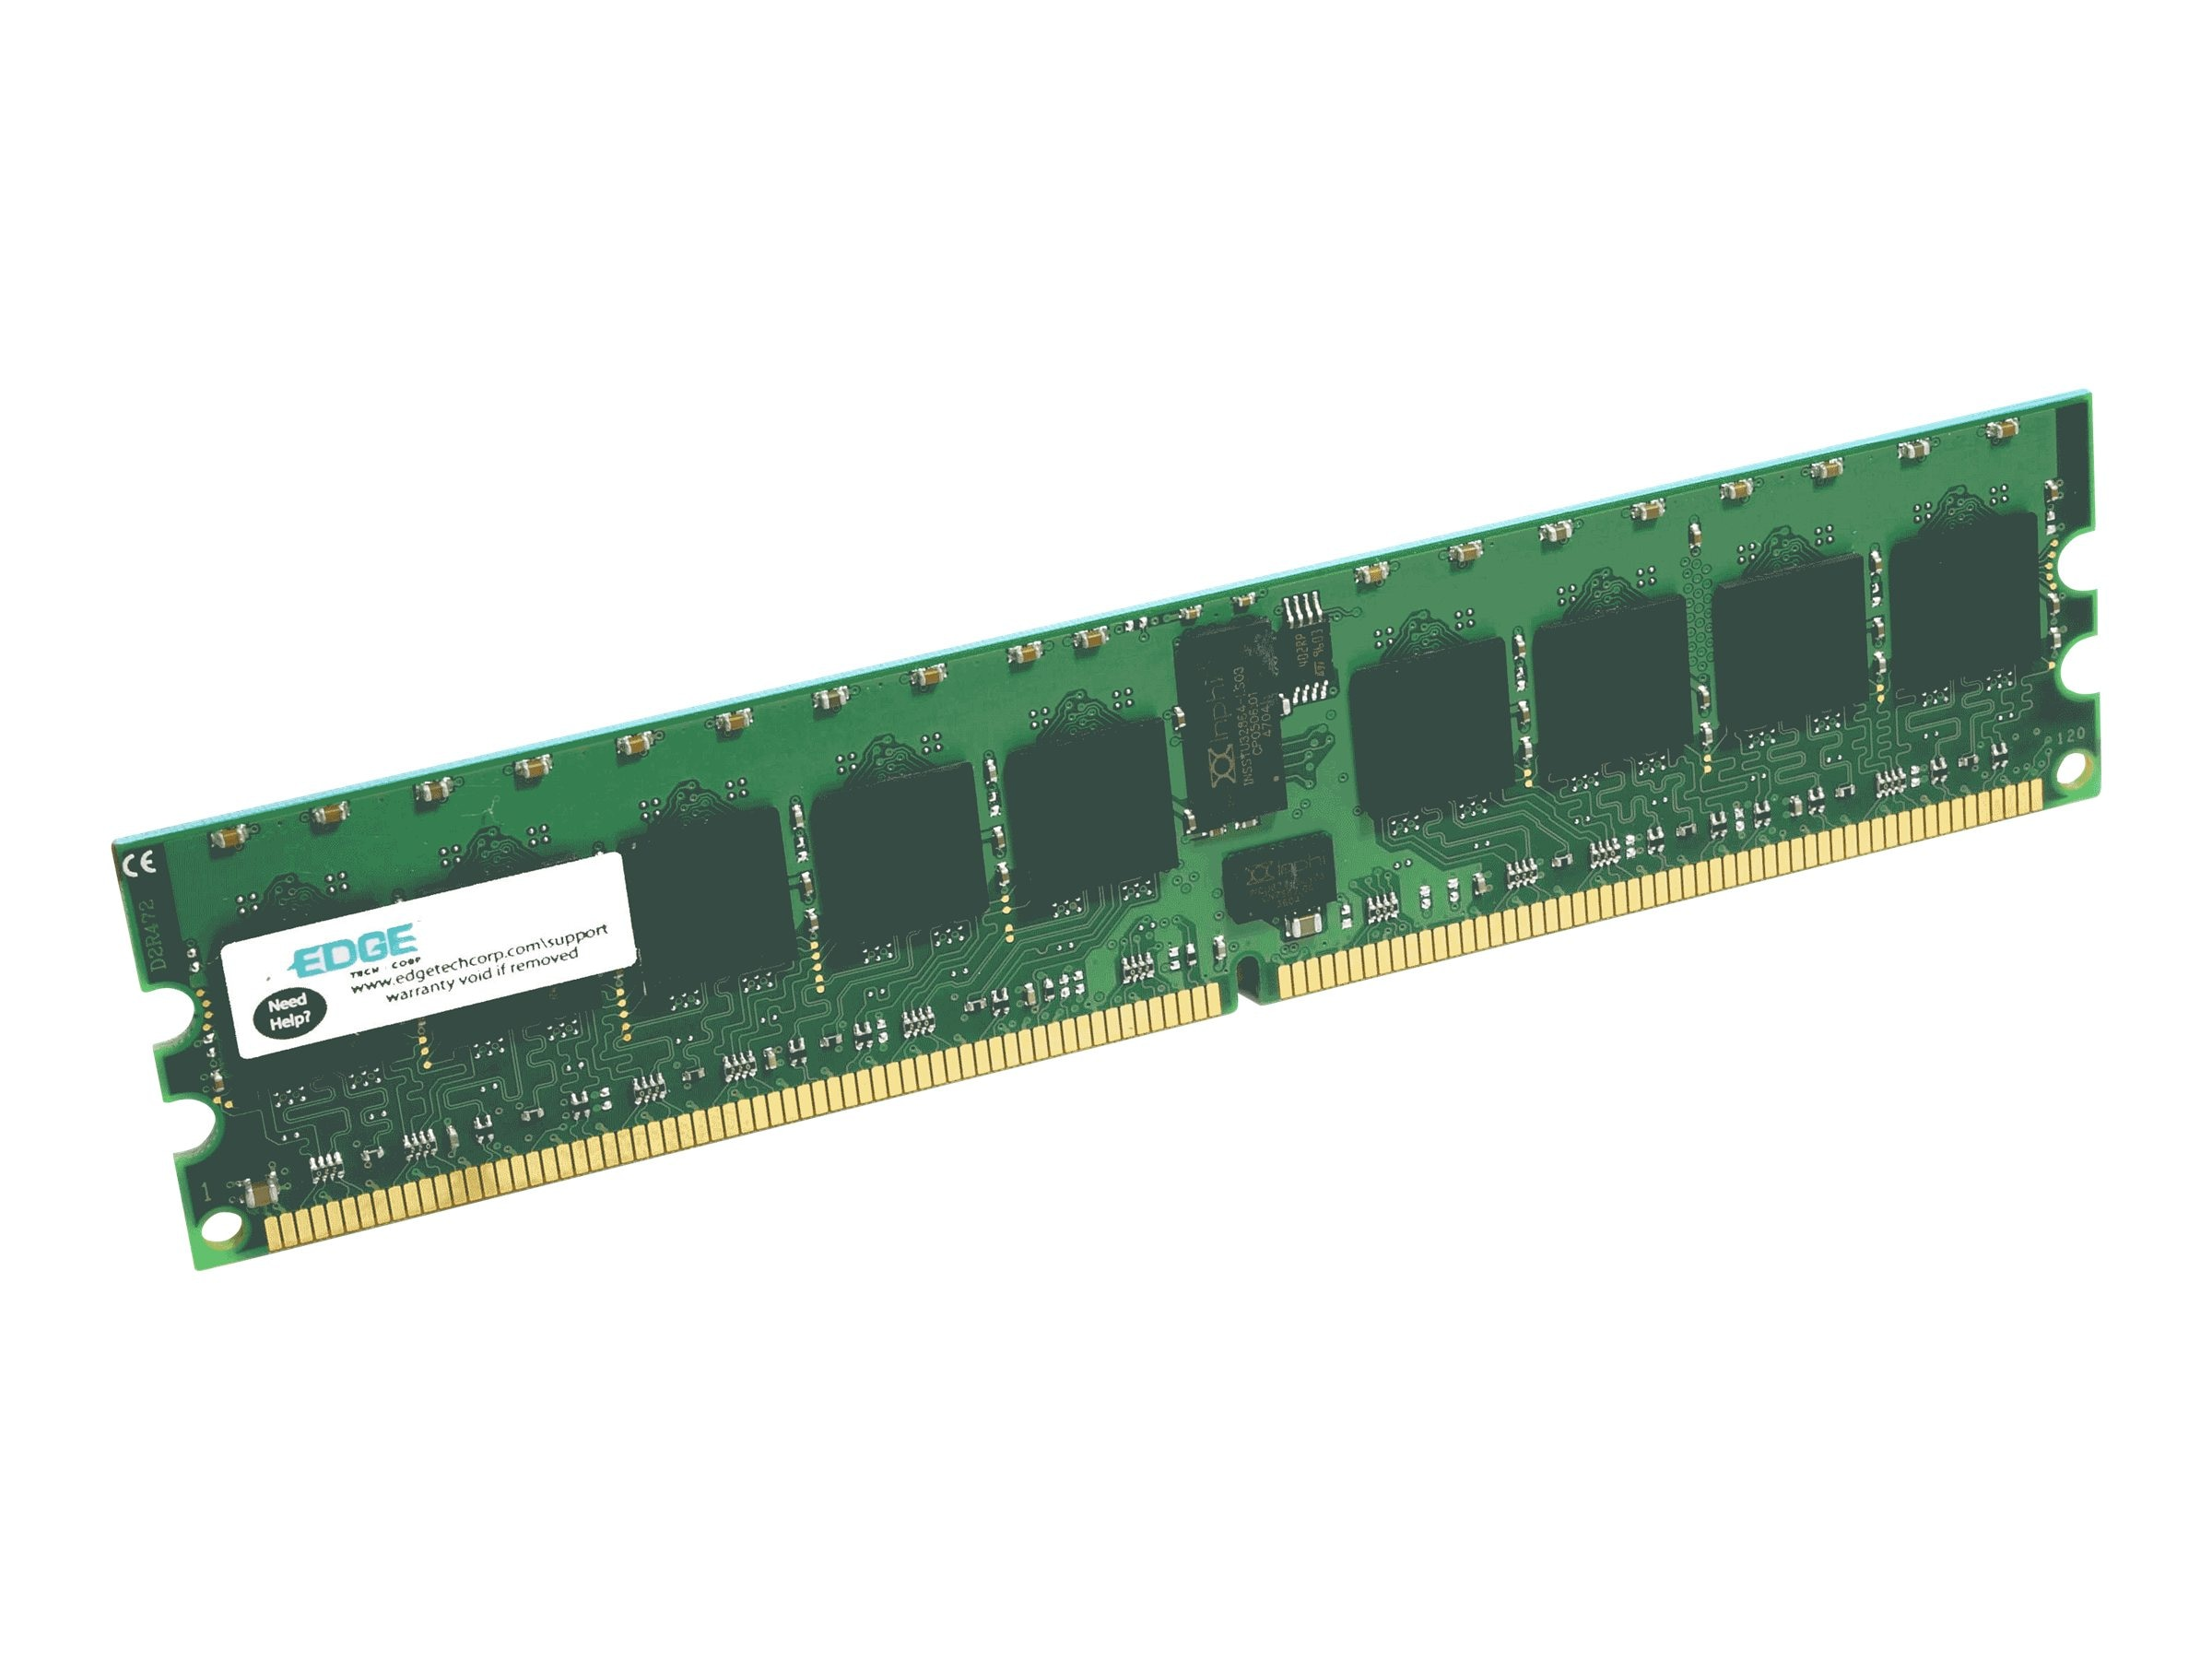 Edge 4GB PC3-10600 240-pin DDR3 SDRAM UDIMM, PE222925